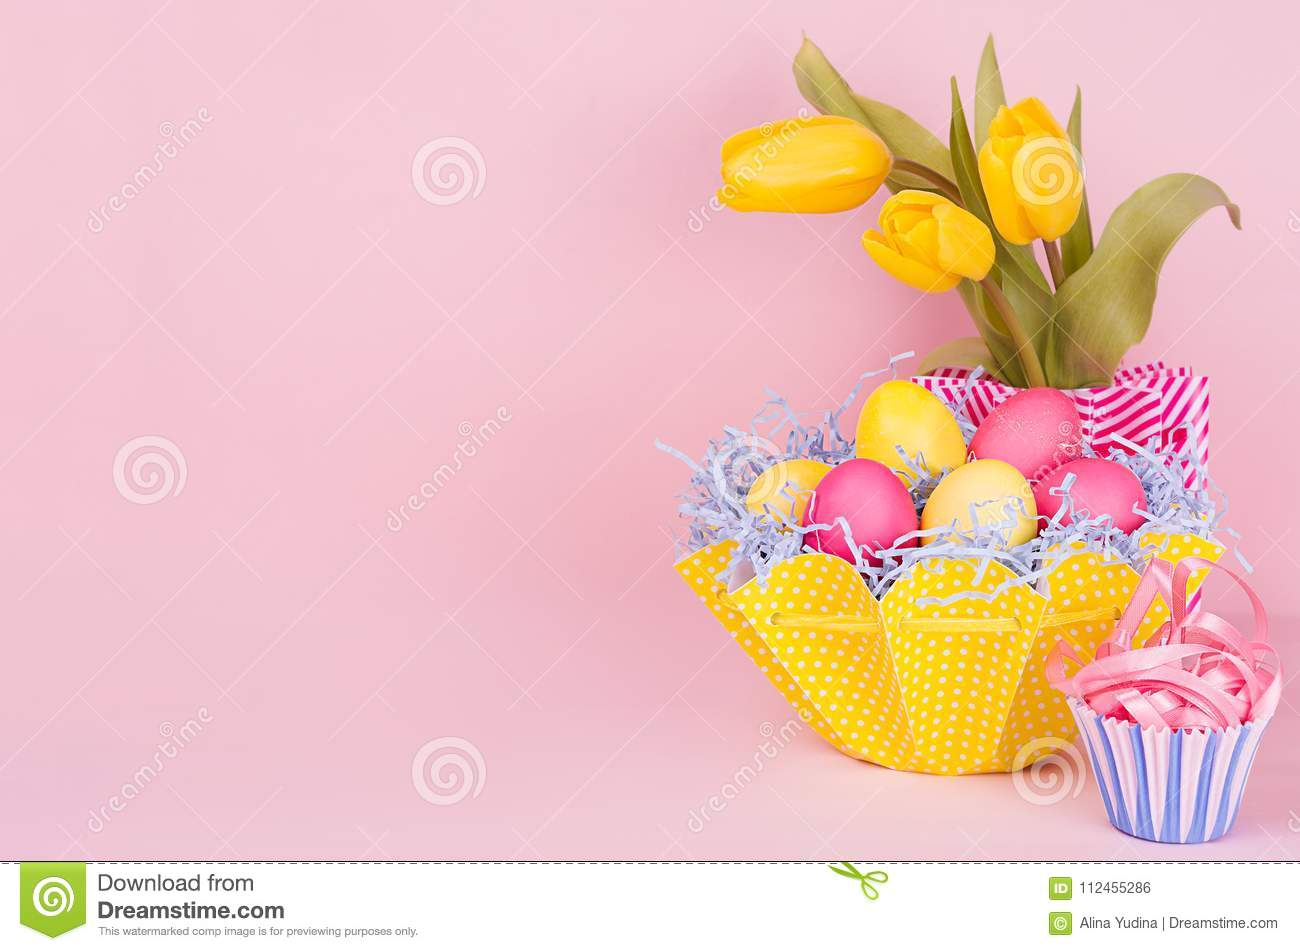 Gentle elegant soft pastel easter decoration - painted eggs, yellow tulips, cupcake on pink background, copy space.